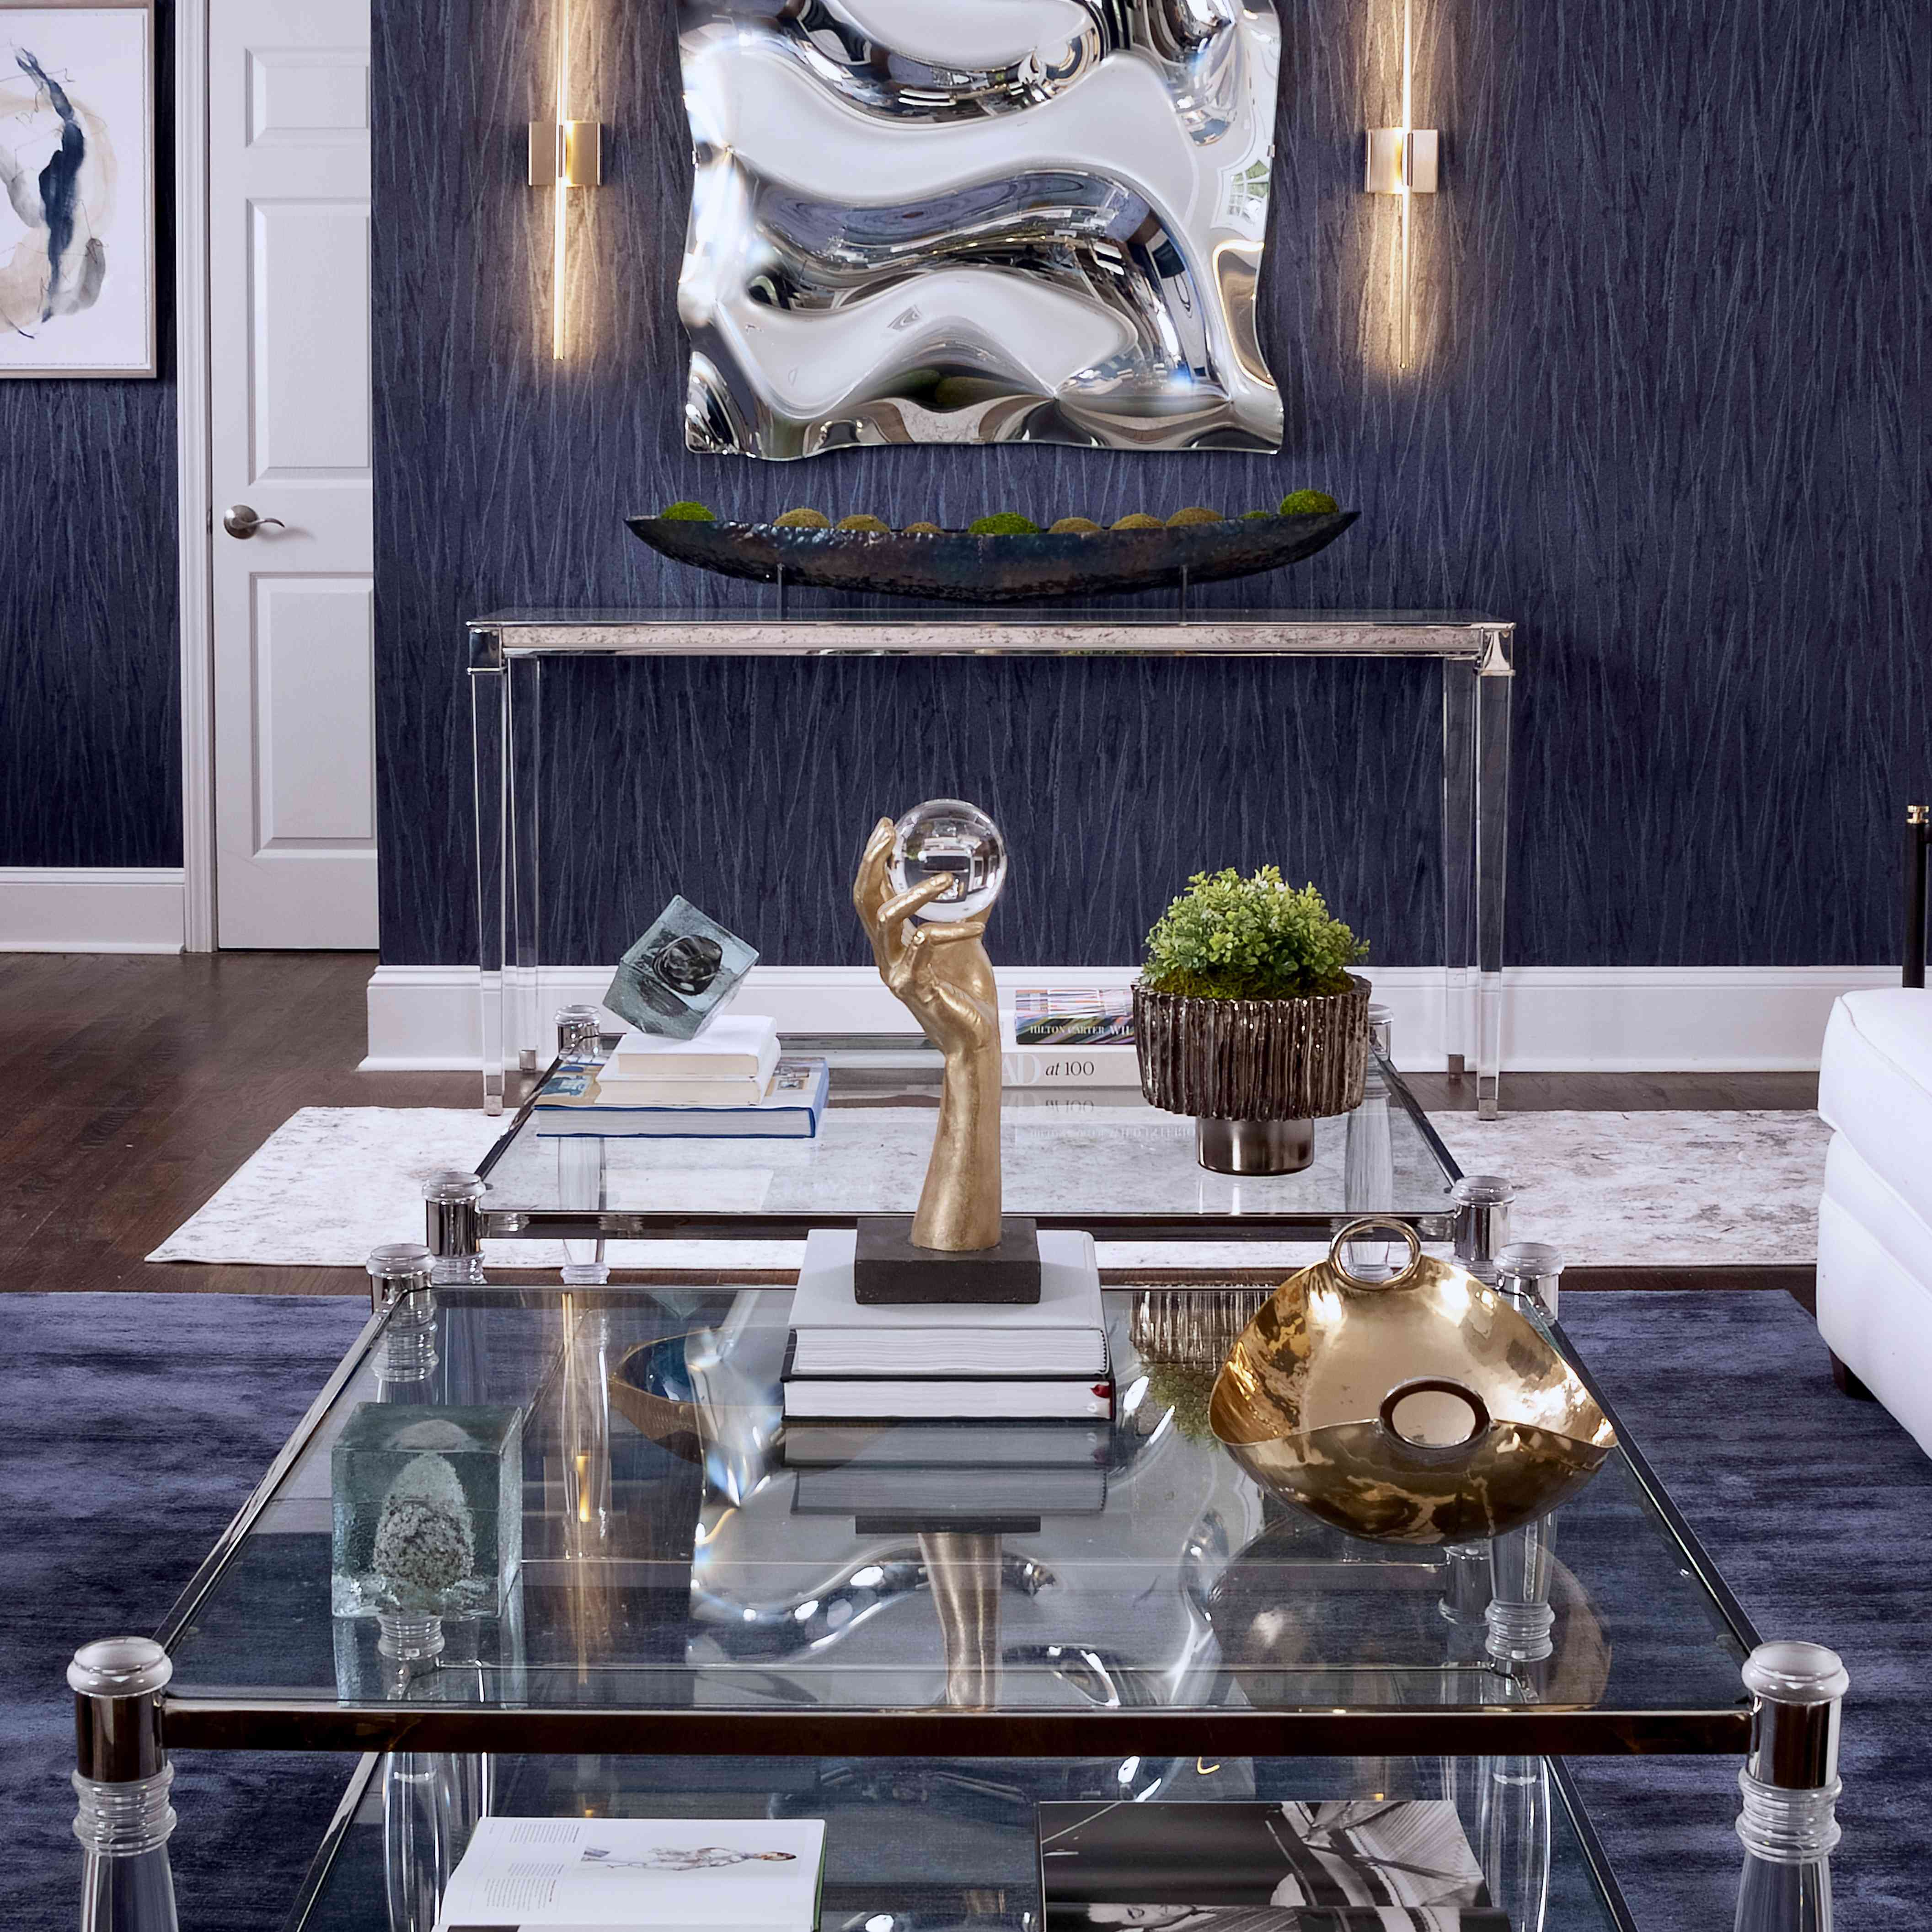 makeover of the week - interior design by S&S, glam living room with navy blue wallpaper and rug with gold accents